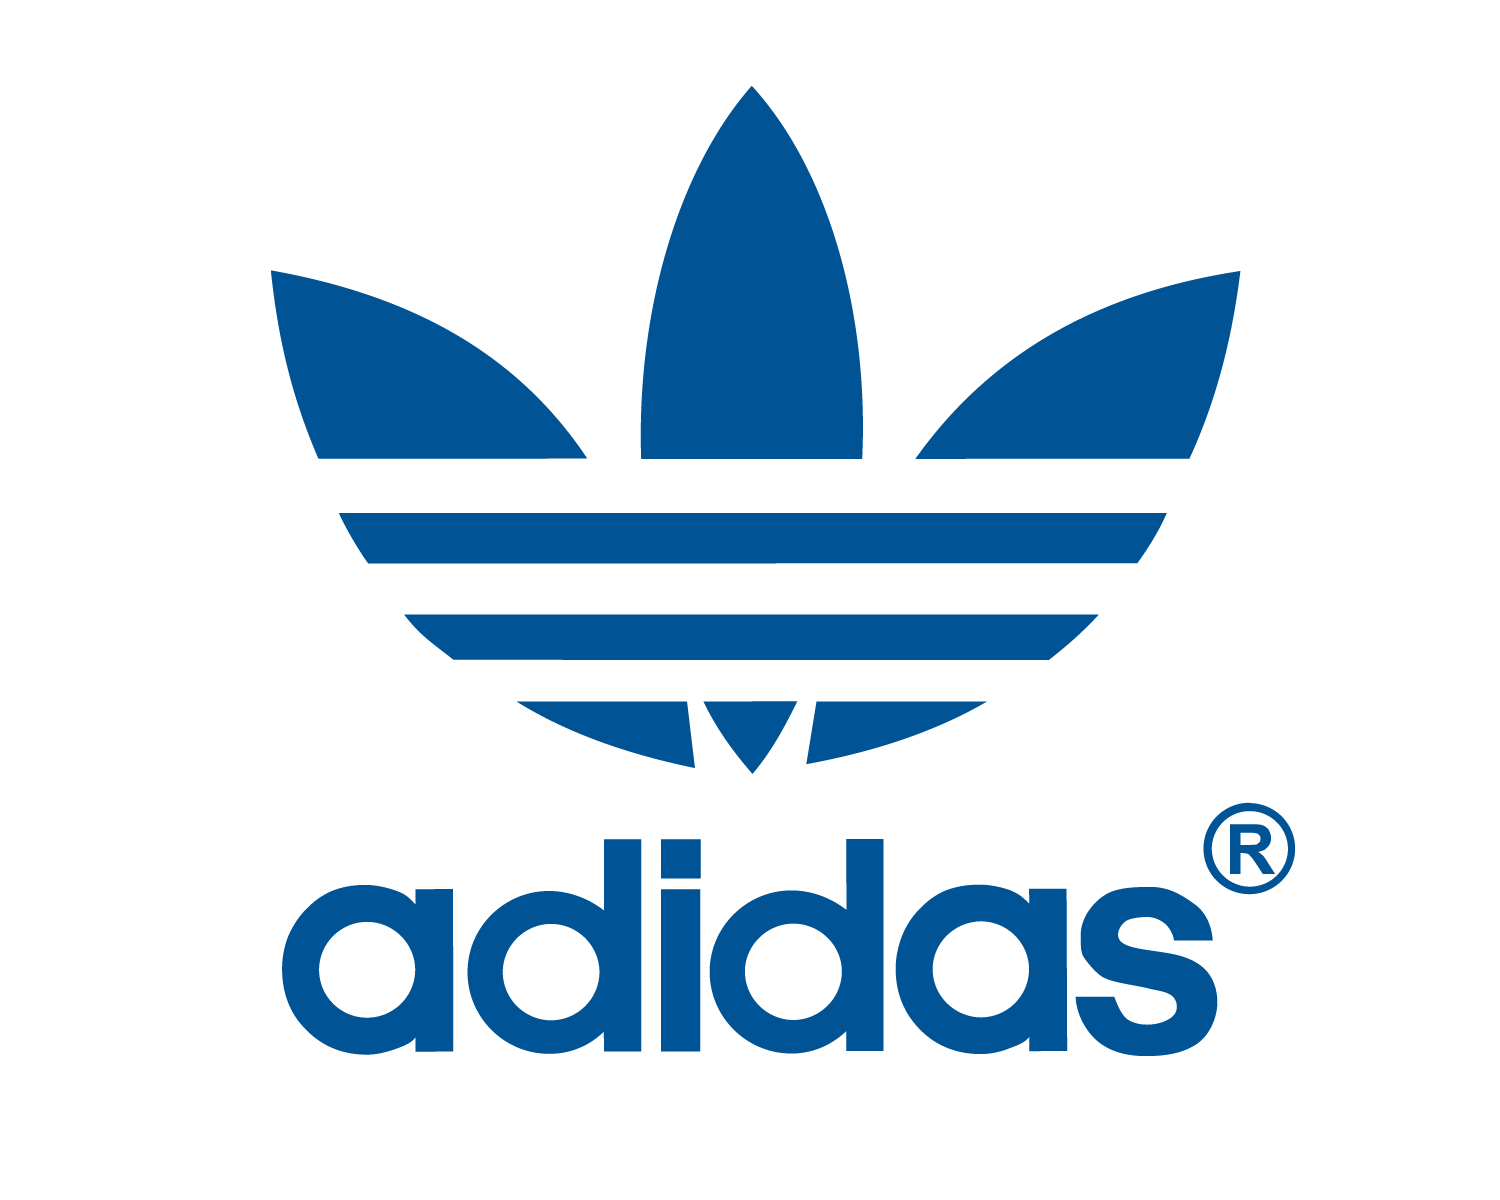 Adidas famous logos. Amazon logo png transparent background royalty free download